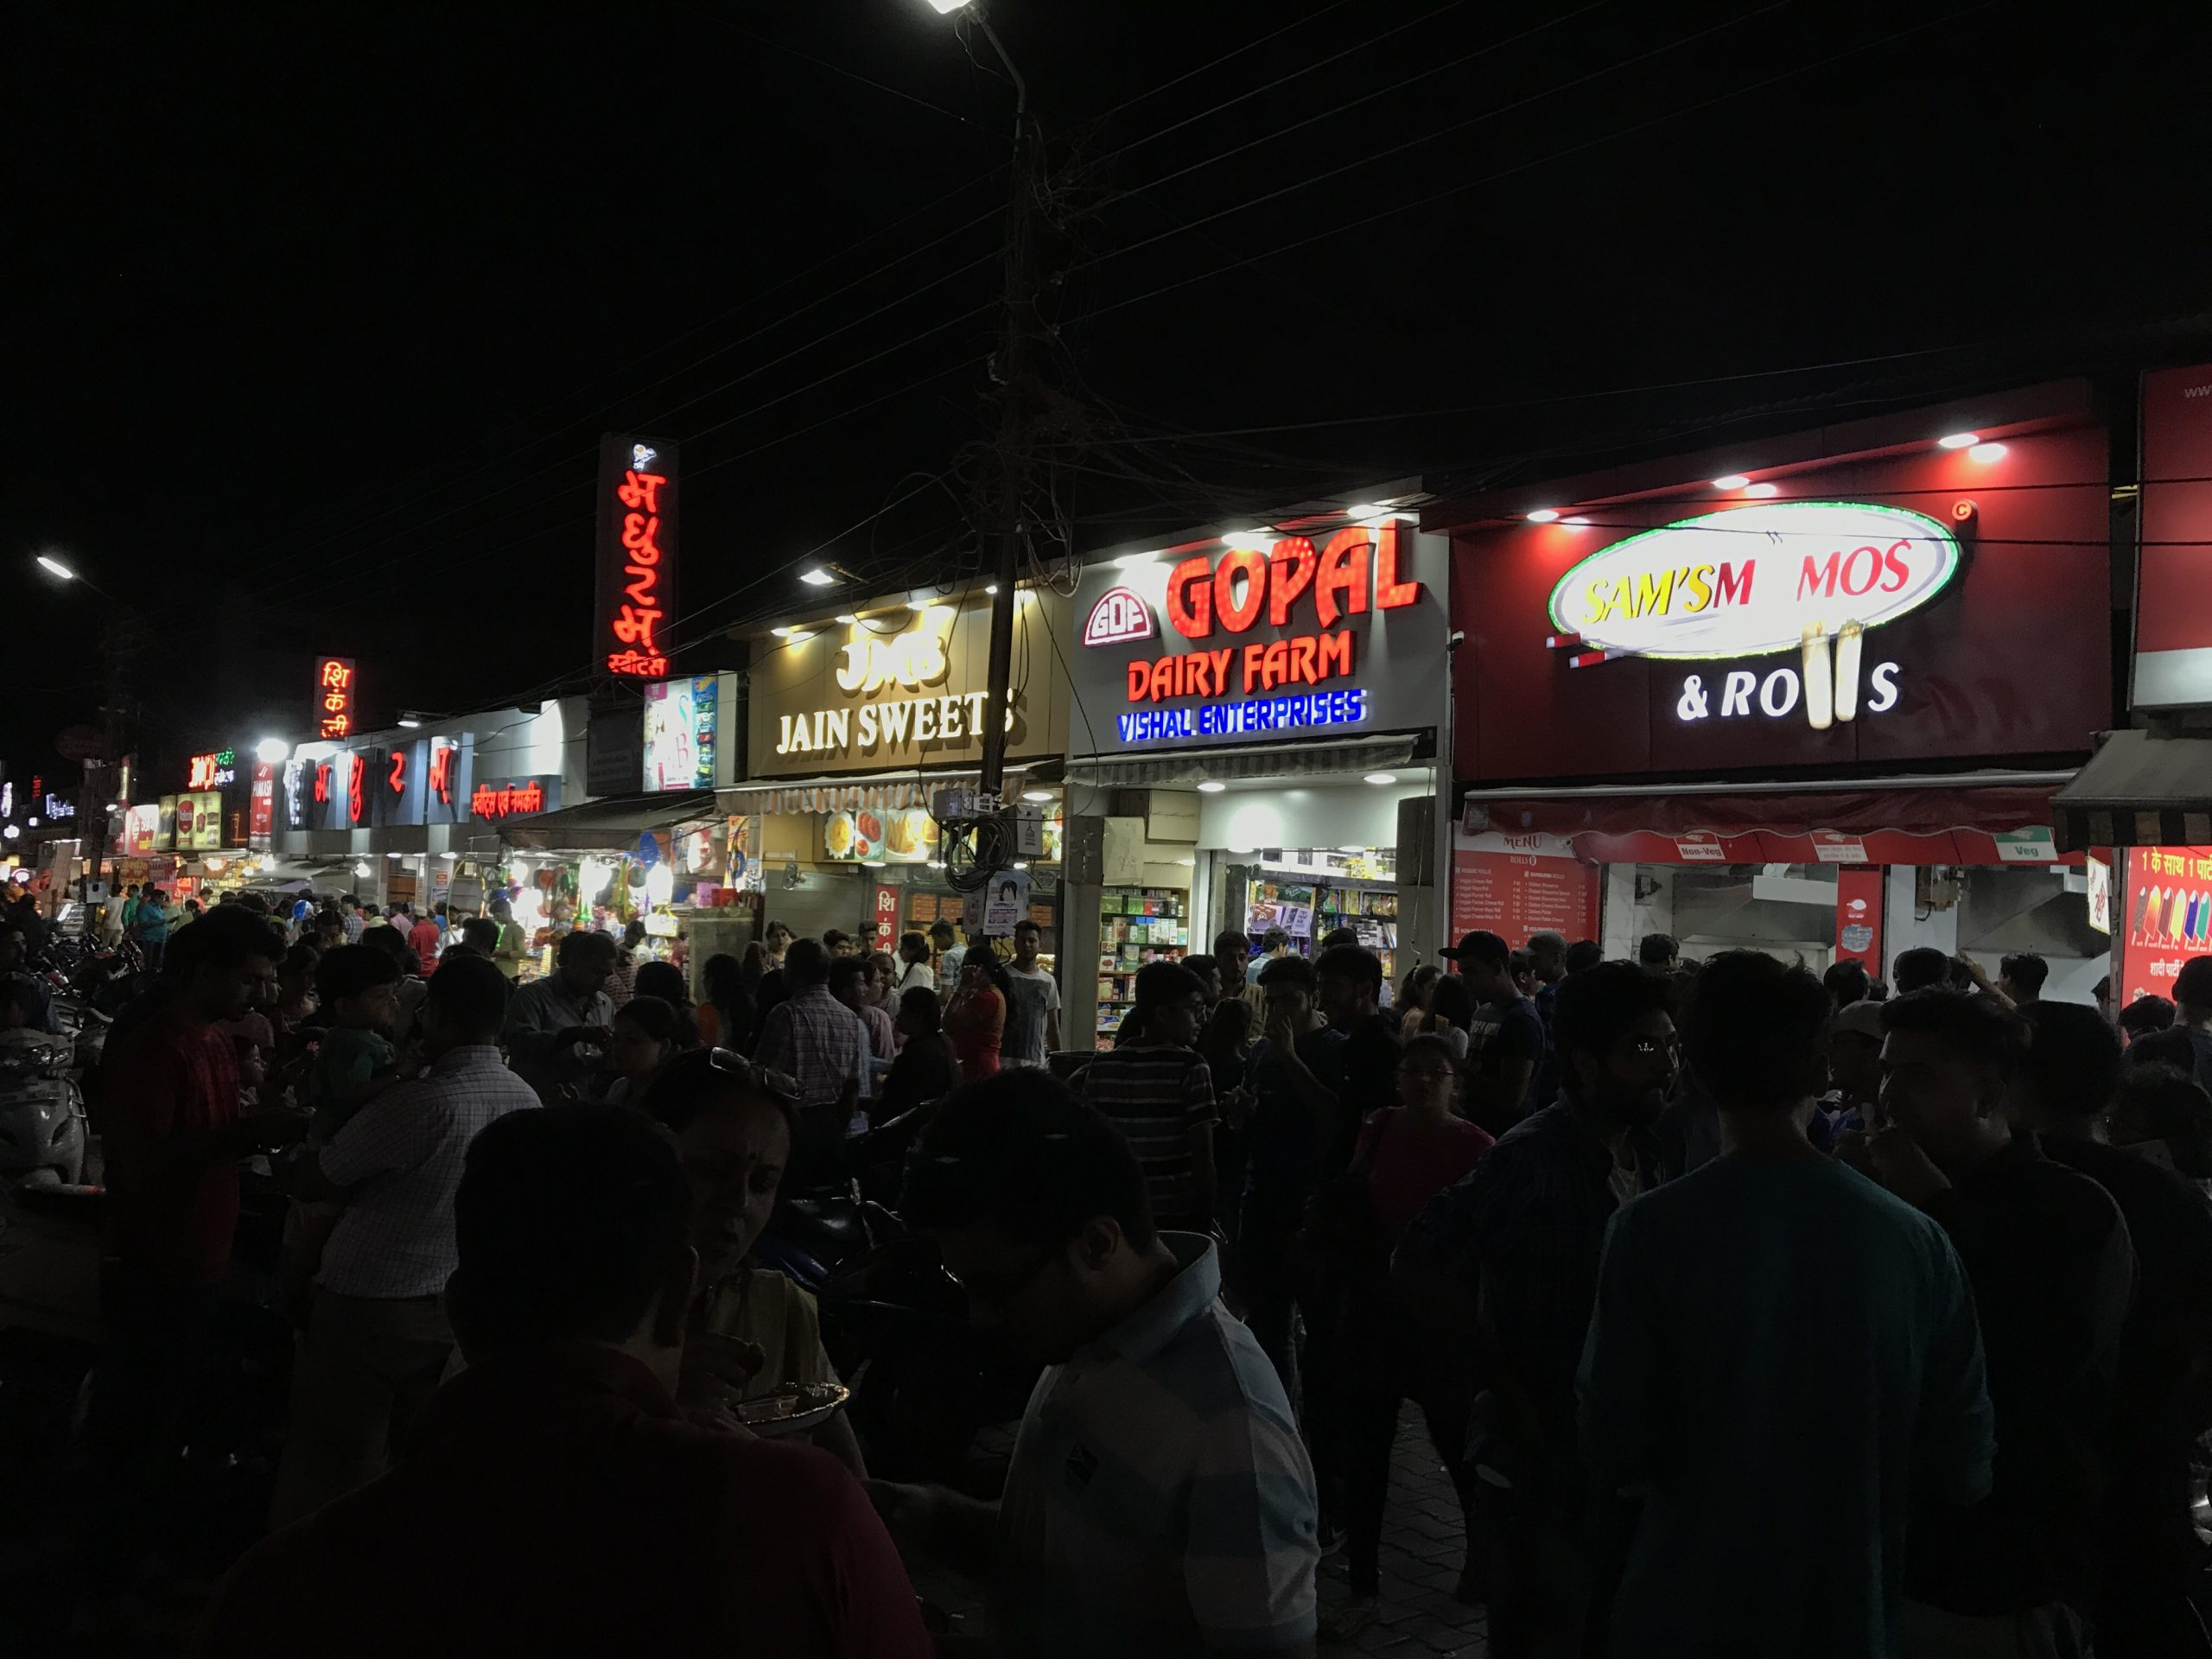 Chappan Bazar-Amazing Shopping Spot in Indore to Satisfy the Shopaholic in You